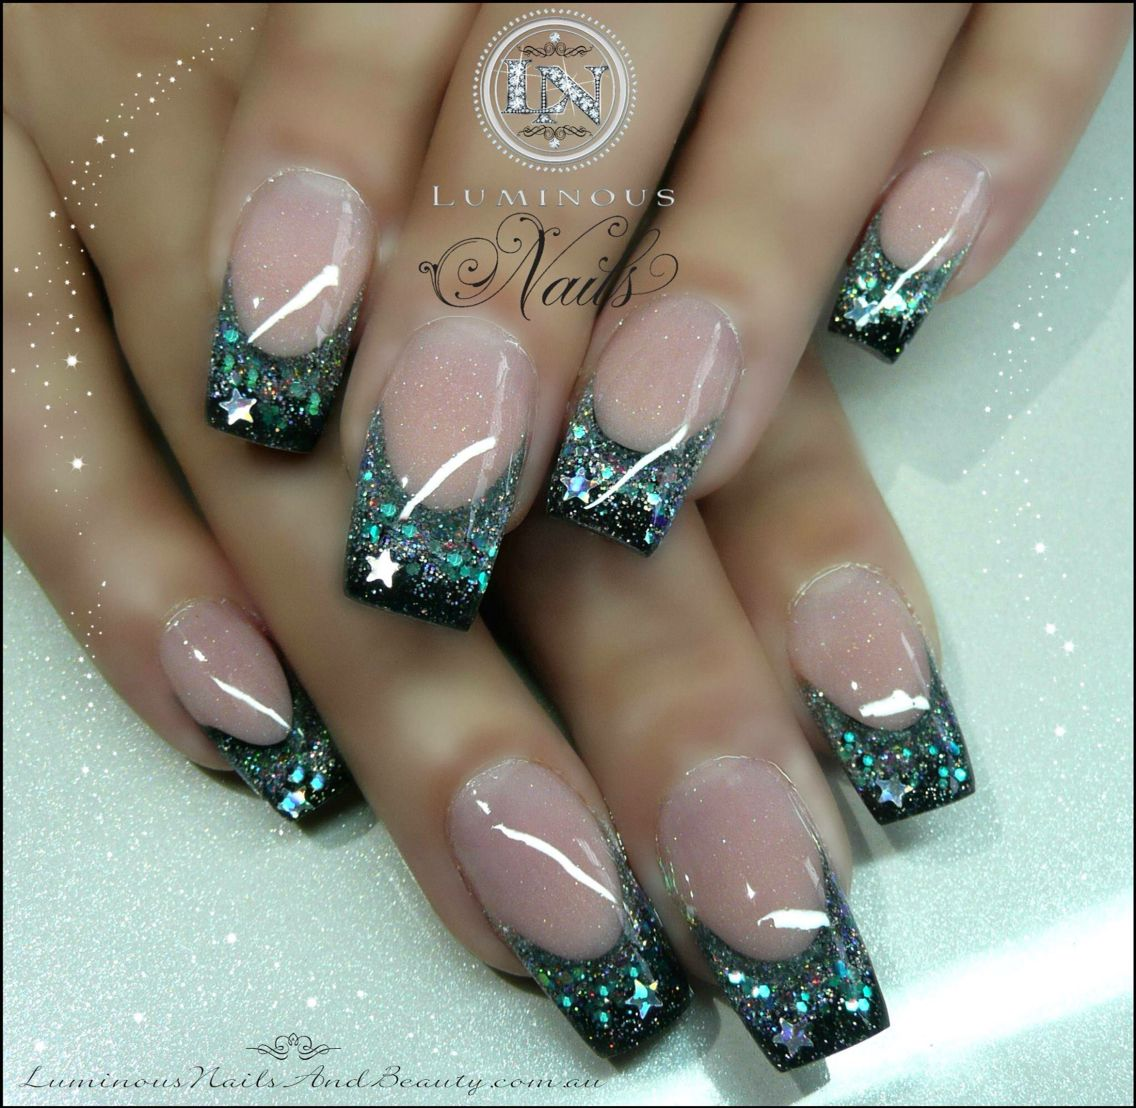 Pin by Mirlie Harris on nails | Pinterest